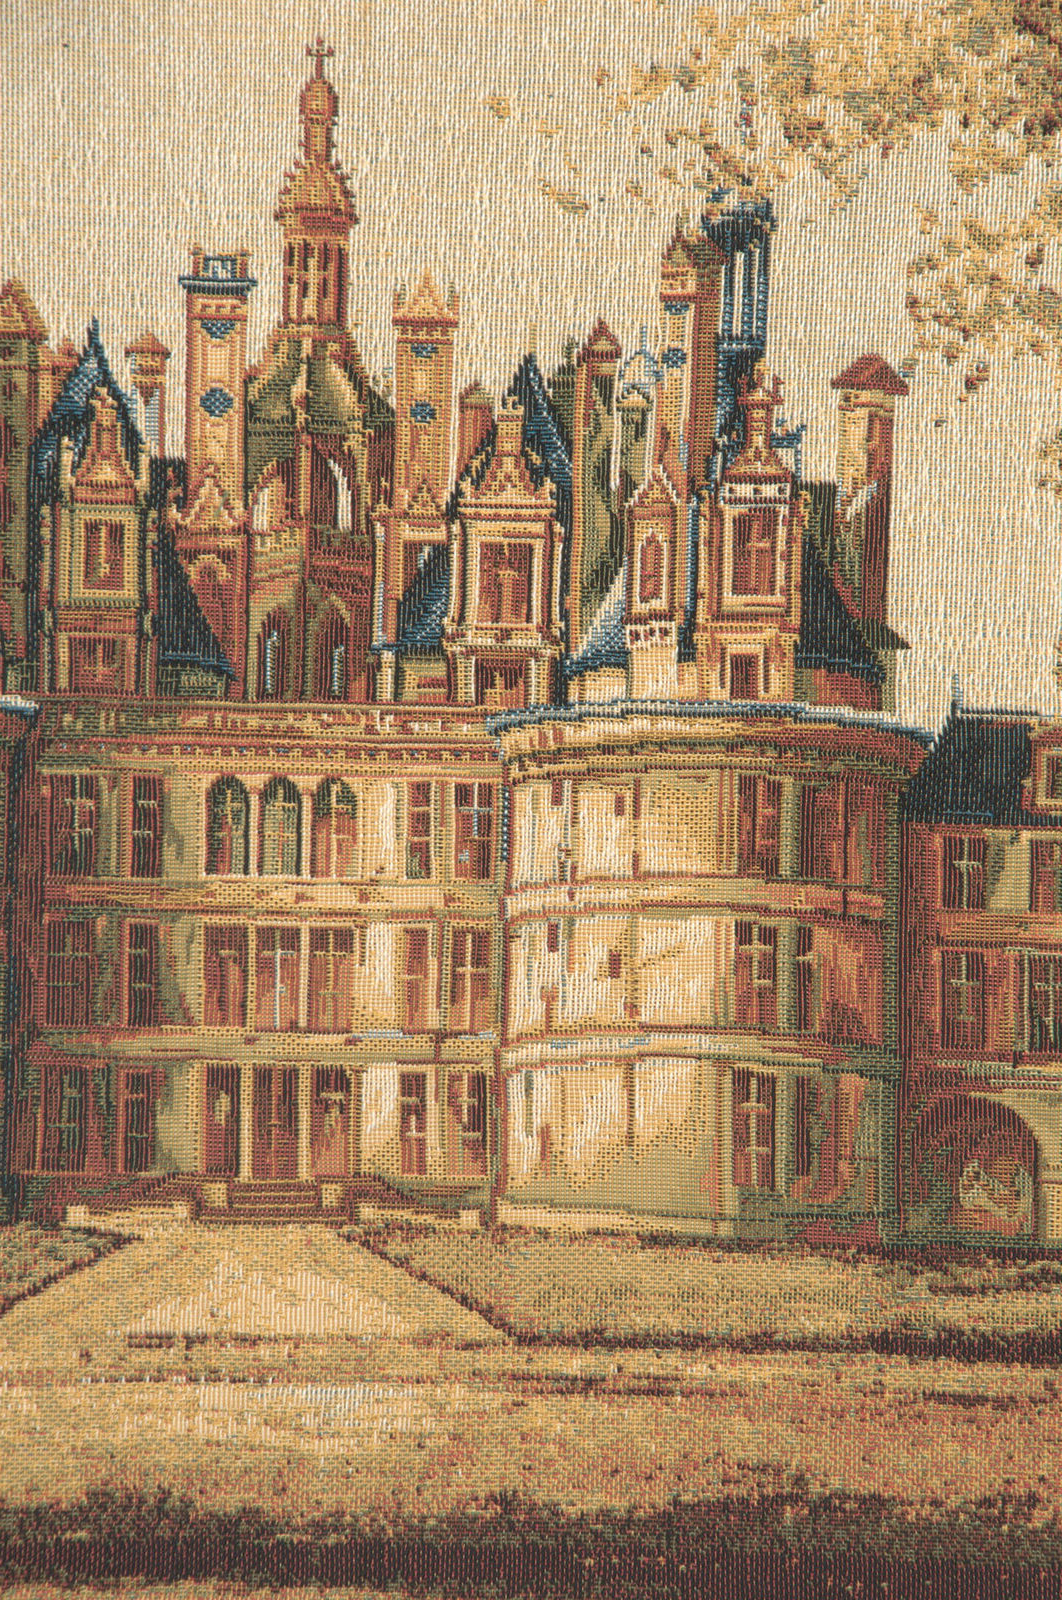 Most Recent Chambord Castle I European Tapestry Wall Hanging Within Chambord Castle I European Wall Hangings (View 6 of 20)